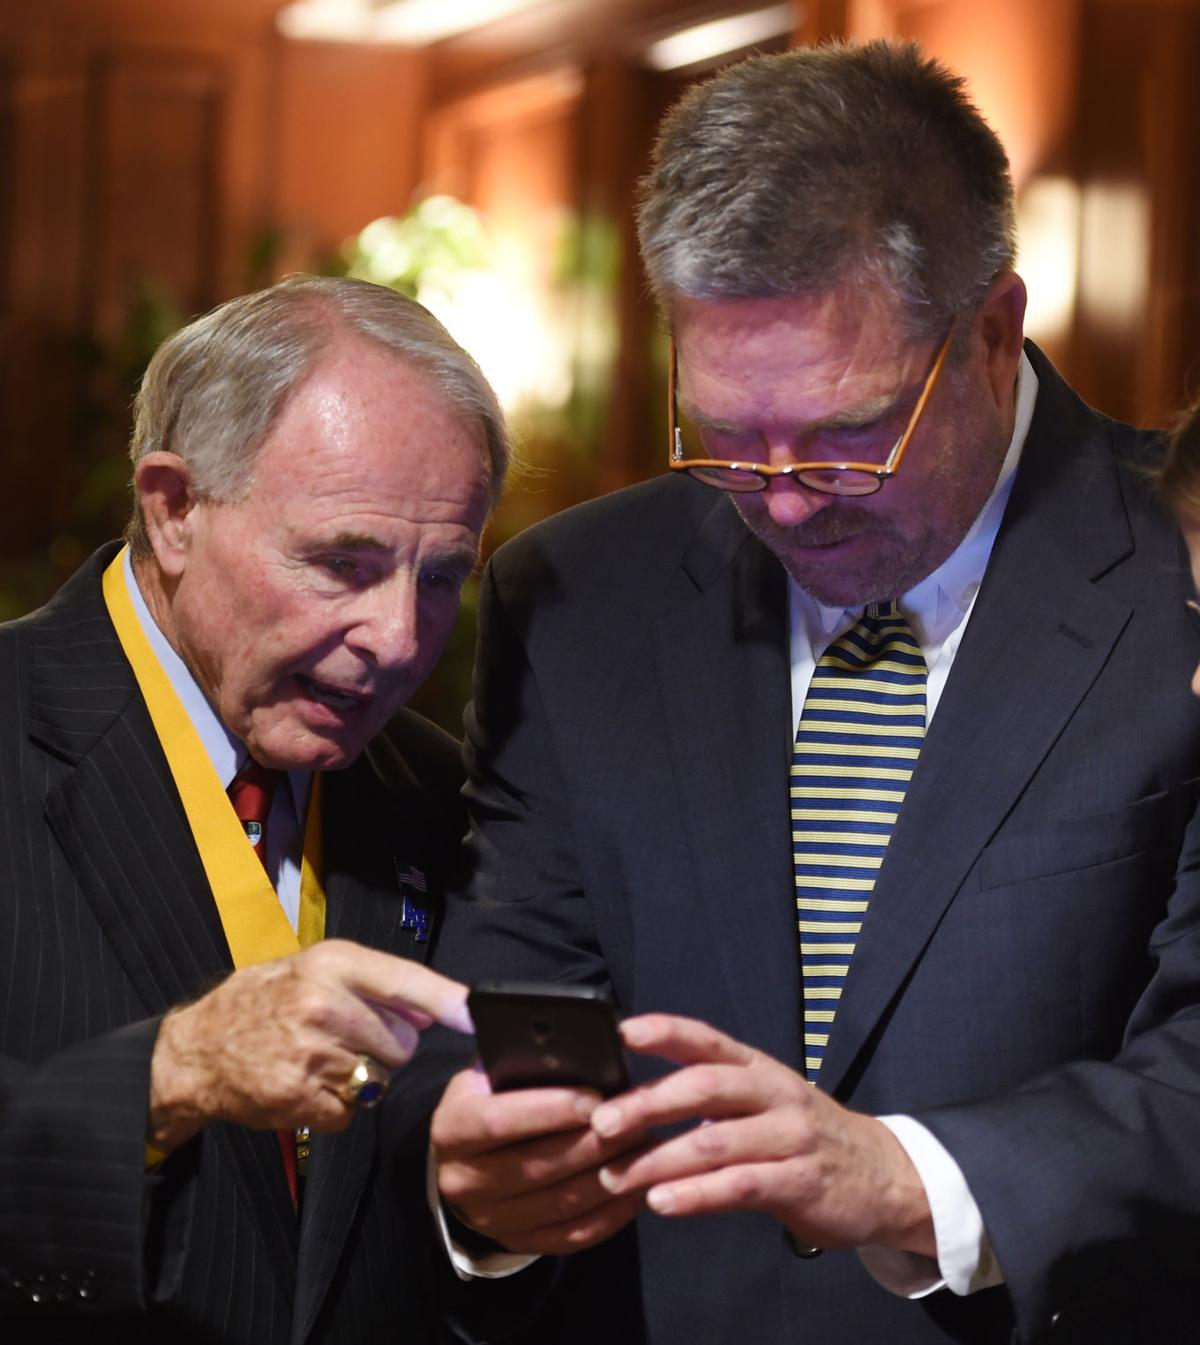 Air Force football coaching legend Fisher DeBerry shares some images on his phone with Tom Osborne, President & CEO of Colorado Springs Sports Corp. (Jerilee Bennett/The Gazette)